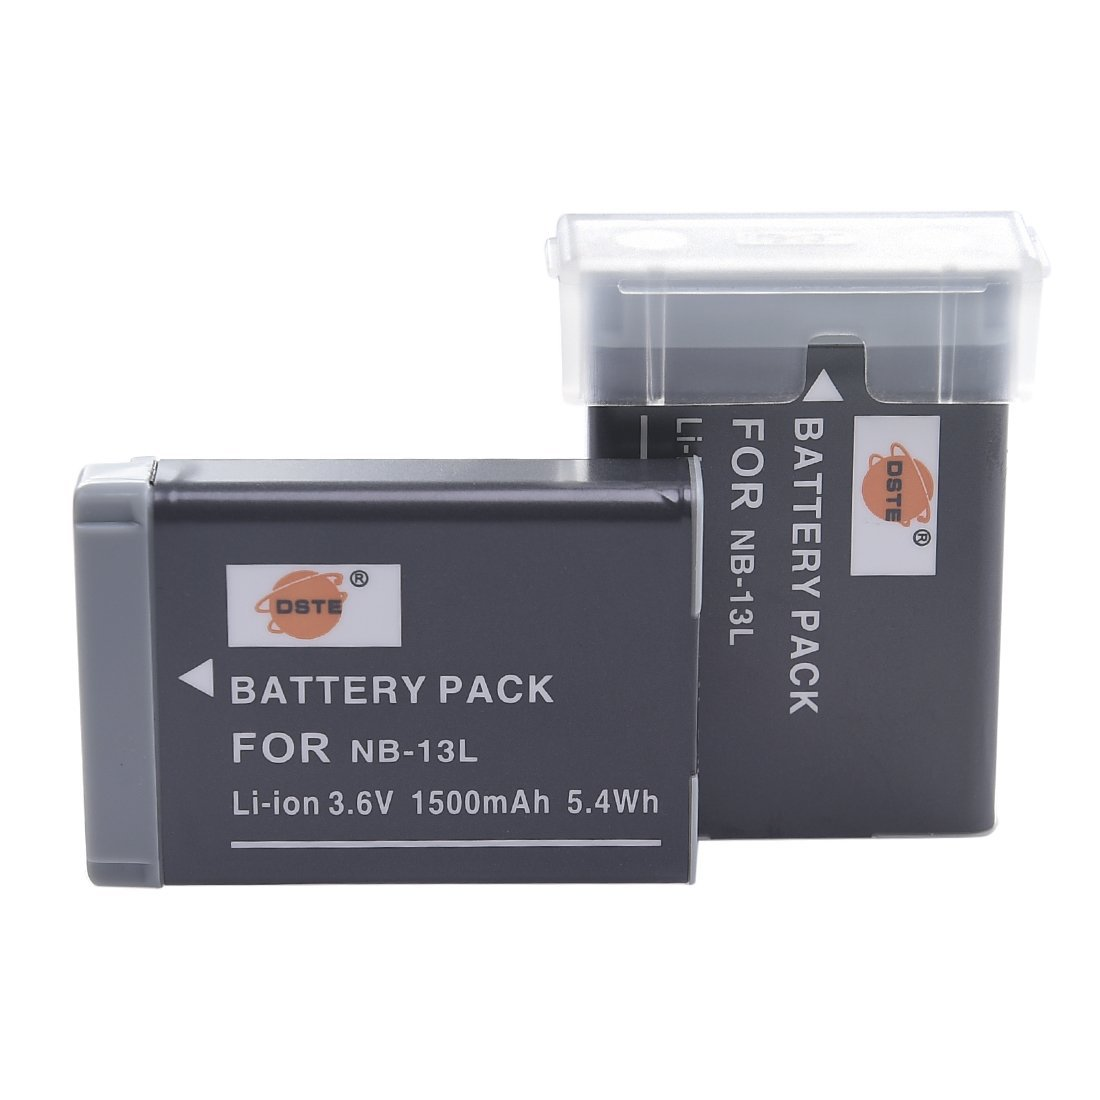 DSTE 2x NB-13L Replacement Li-ion Battery for Canon PowerShot G5X G7X G9X G7 X Mark II G9X Mark II SX620 HS SX720 HS SX730 HS Digital Camera as NB13L